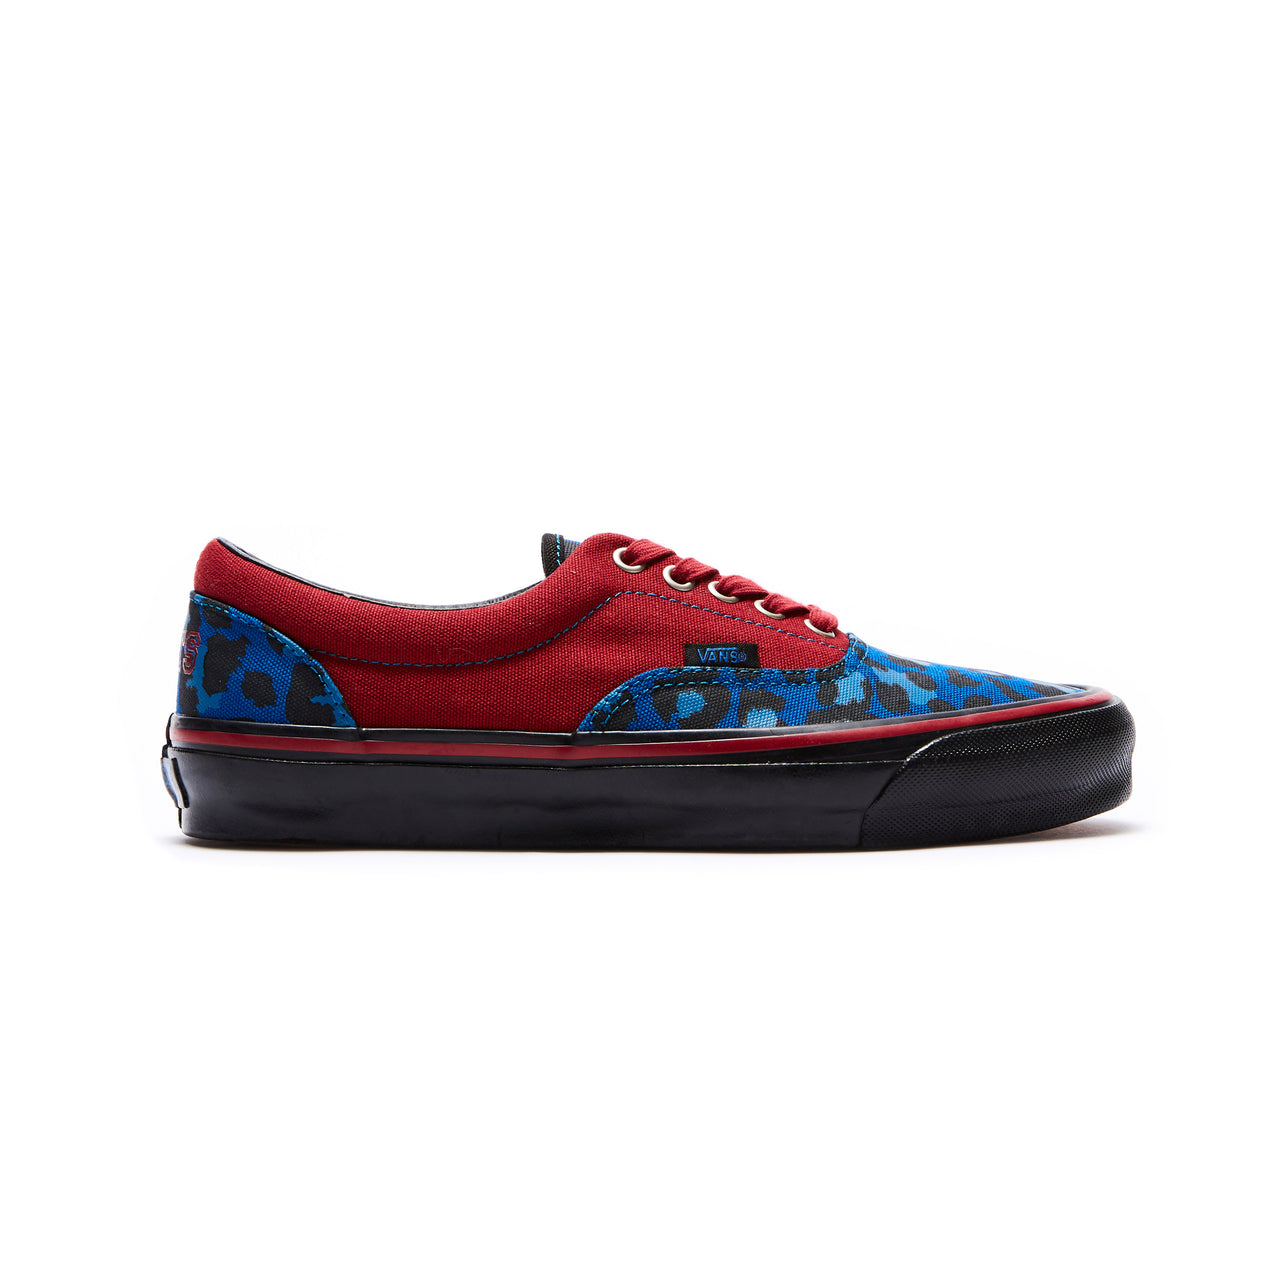 SR / Vans OG Era LX (Rio Red / Snorkel Blue)